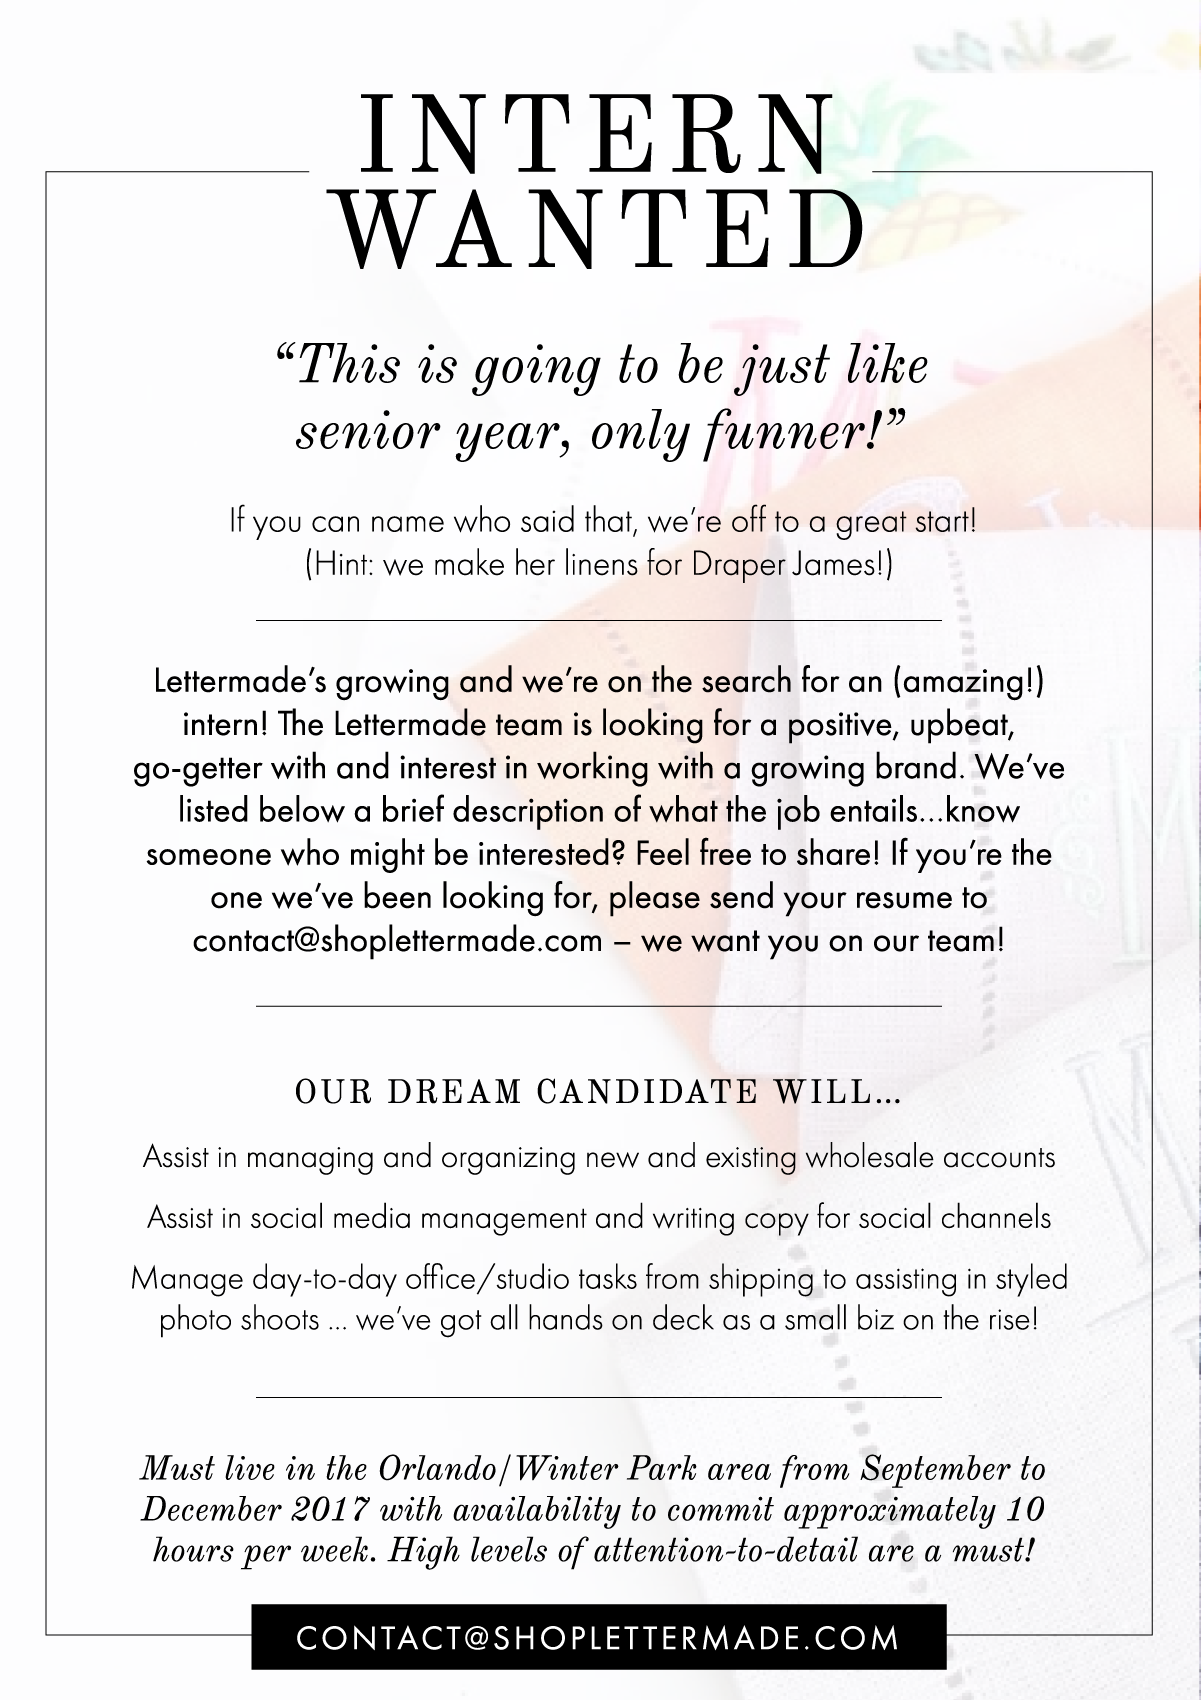 Interested in joining our team? - We're looking for an intern! Please send resumes to contact@shoplettermade.com.